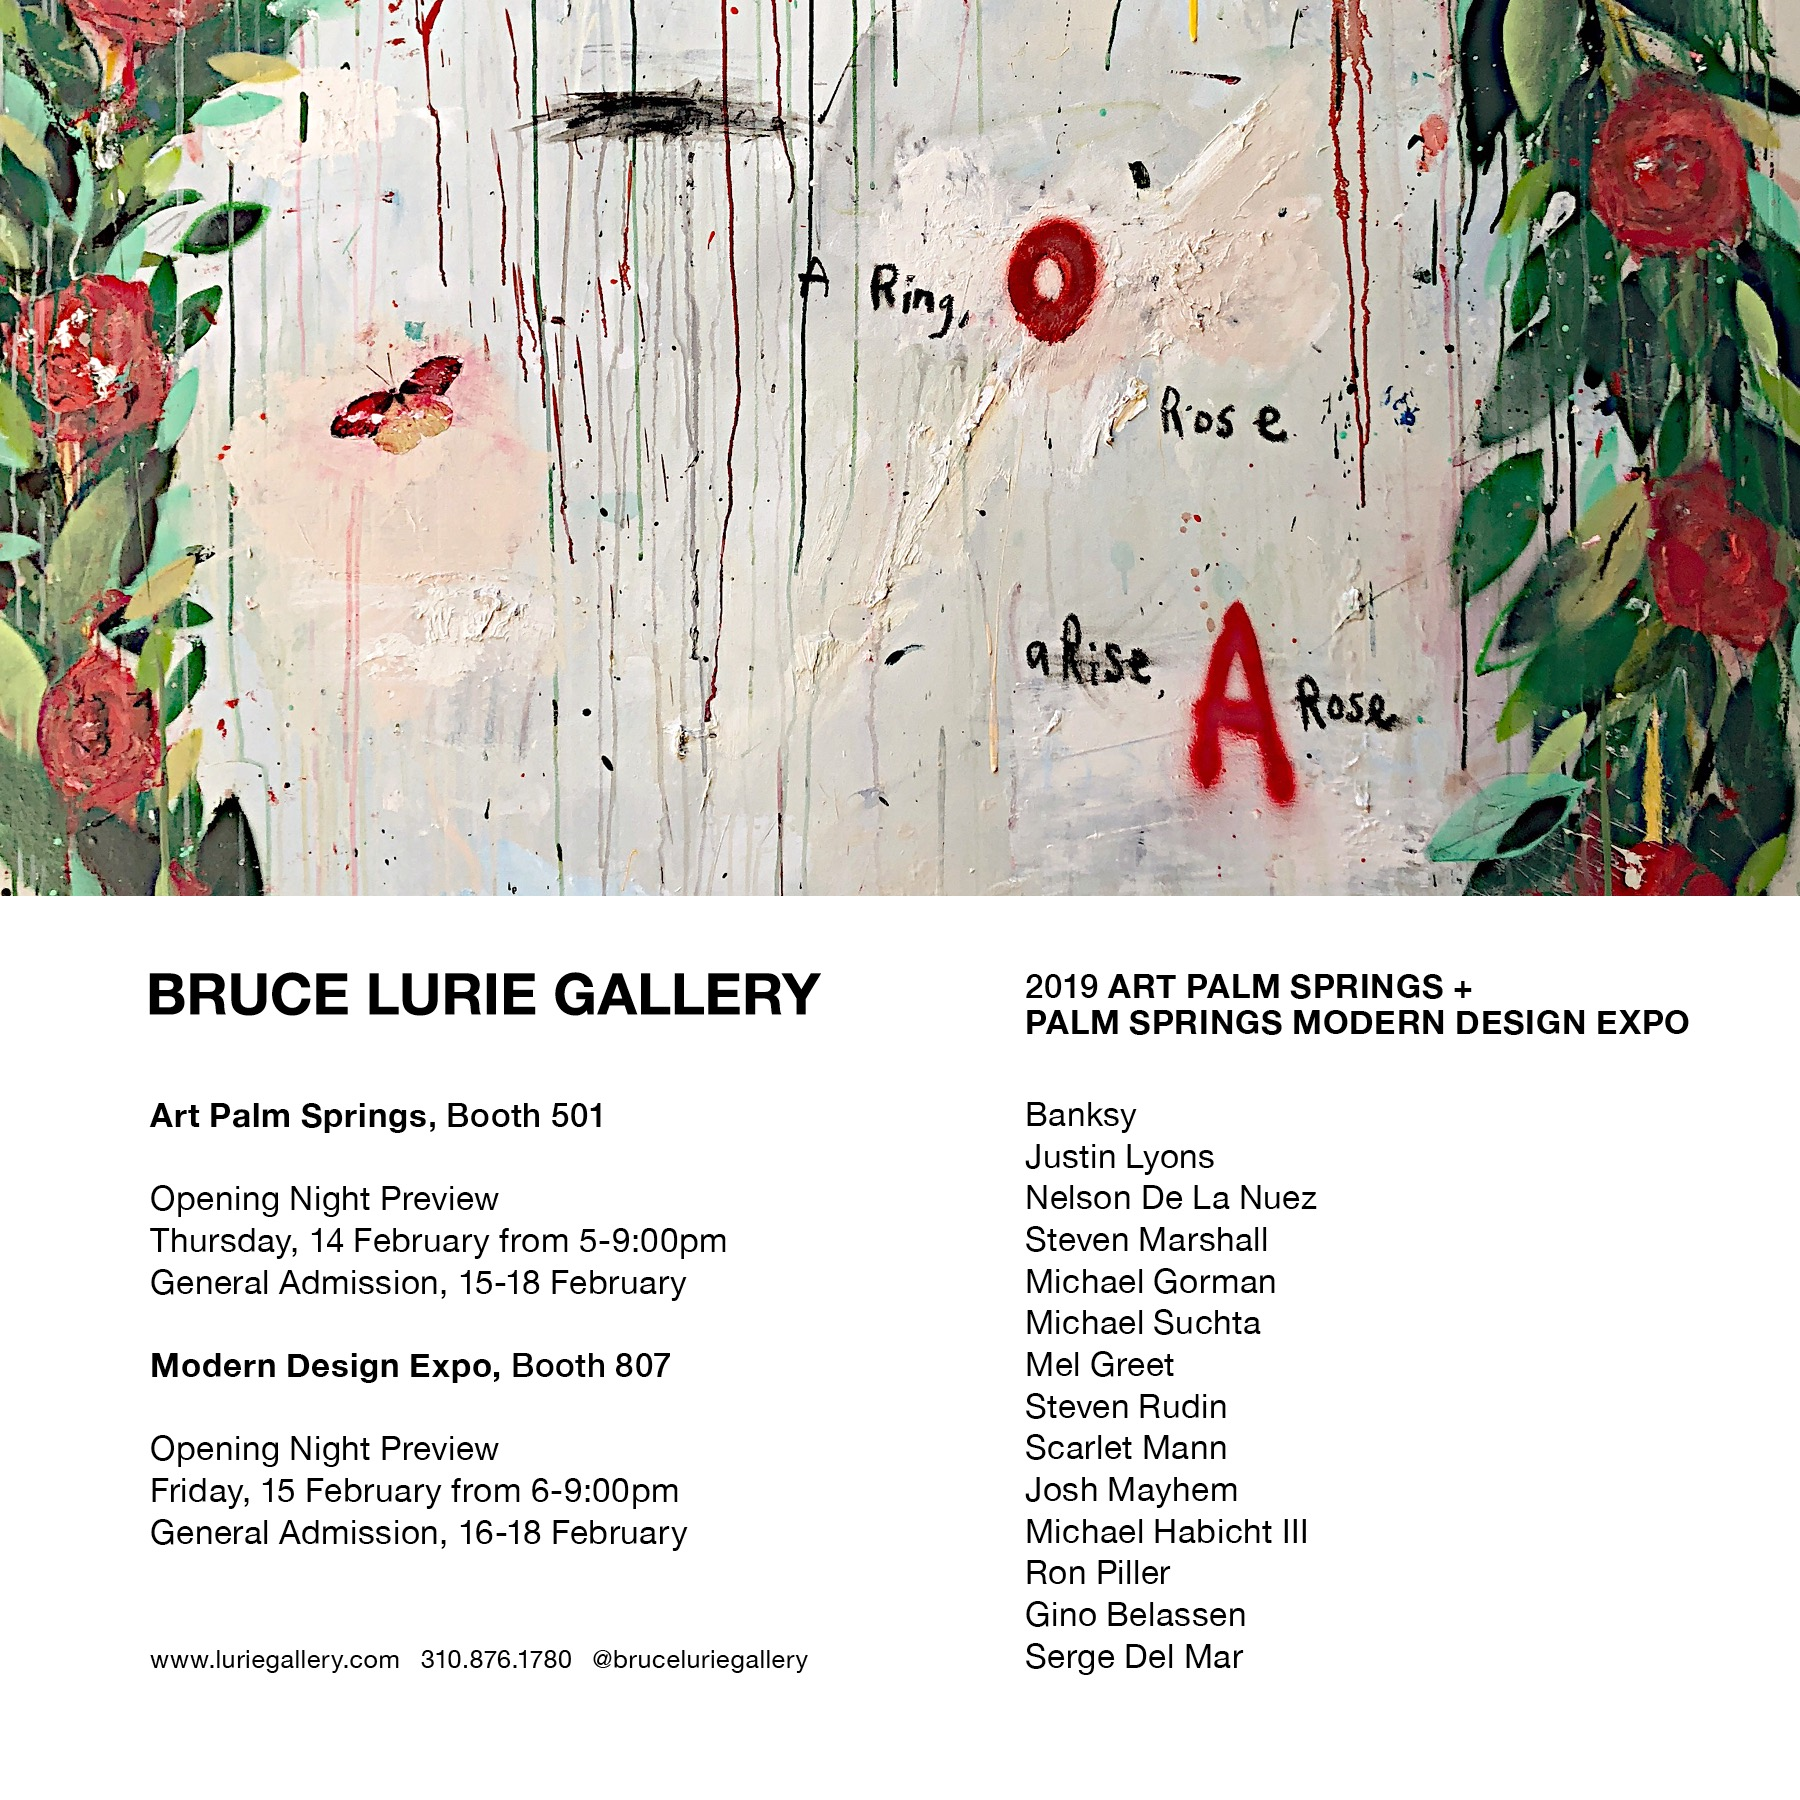 Events at Bruce Lurie Gallery